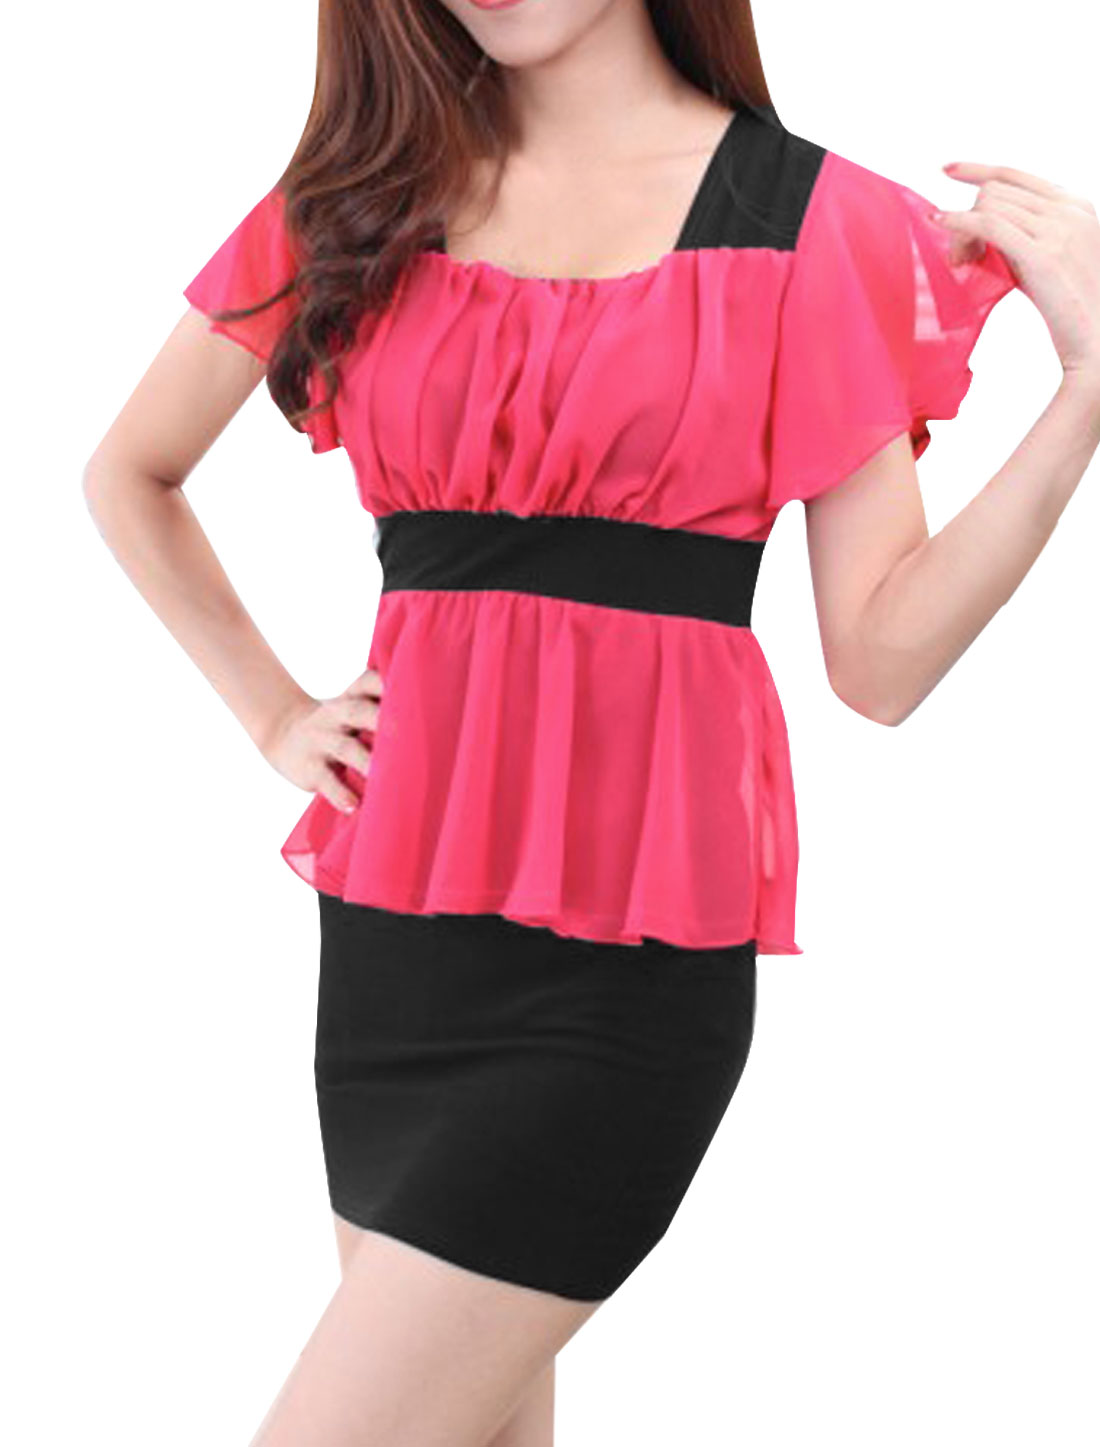 Women Square Neck Butterfly Sleeves Paneled Peplum Dress Pink Black XS